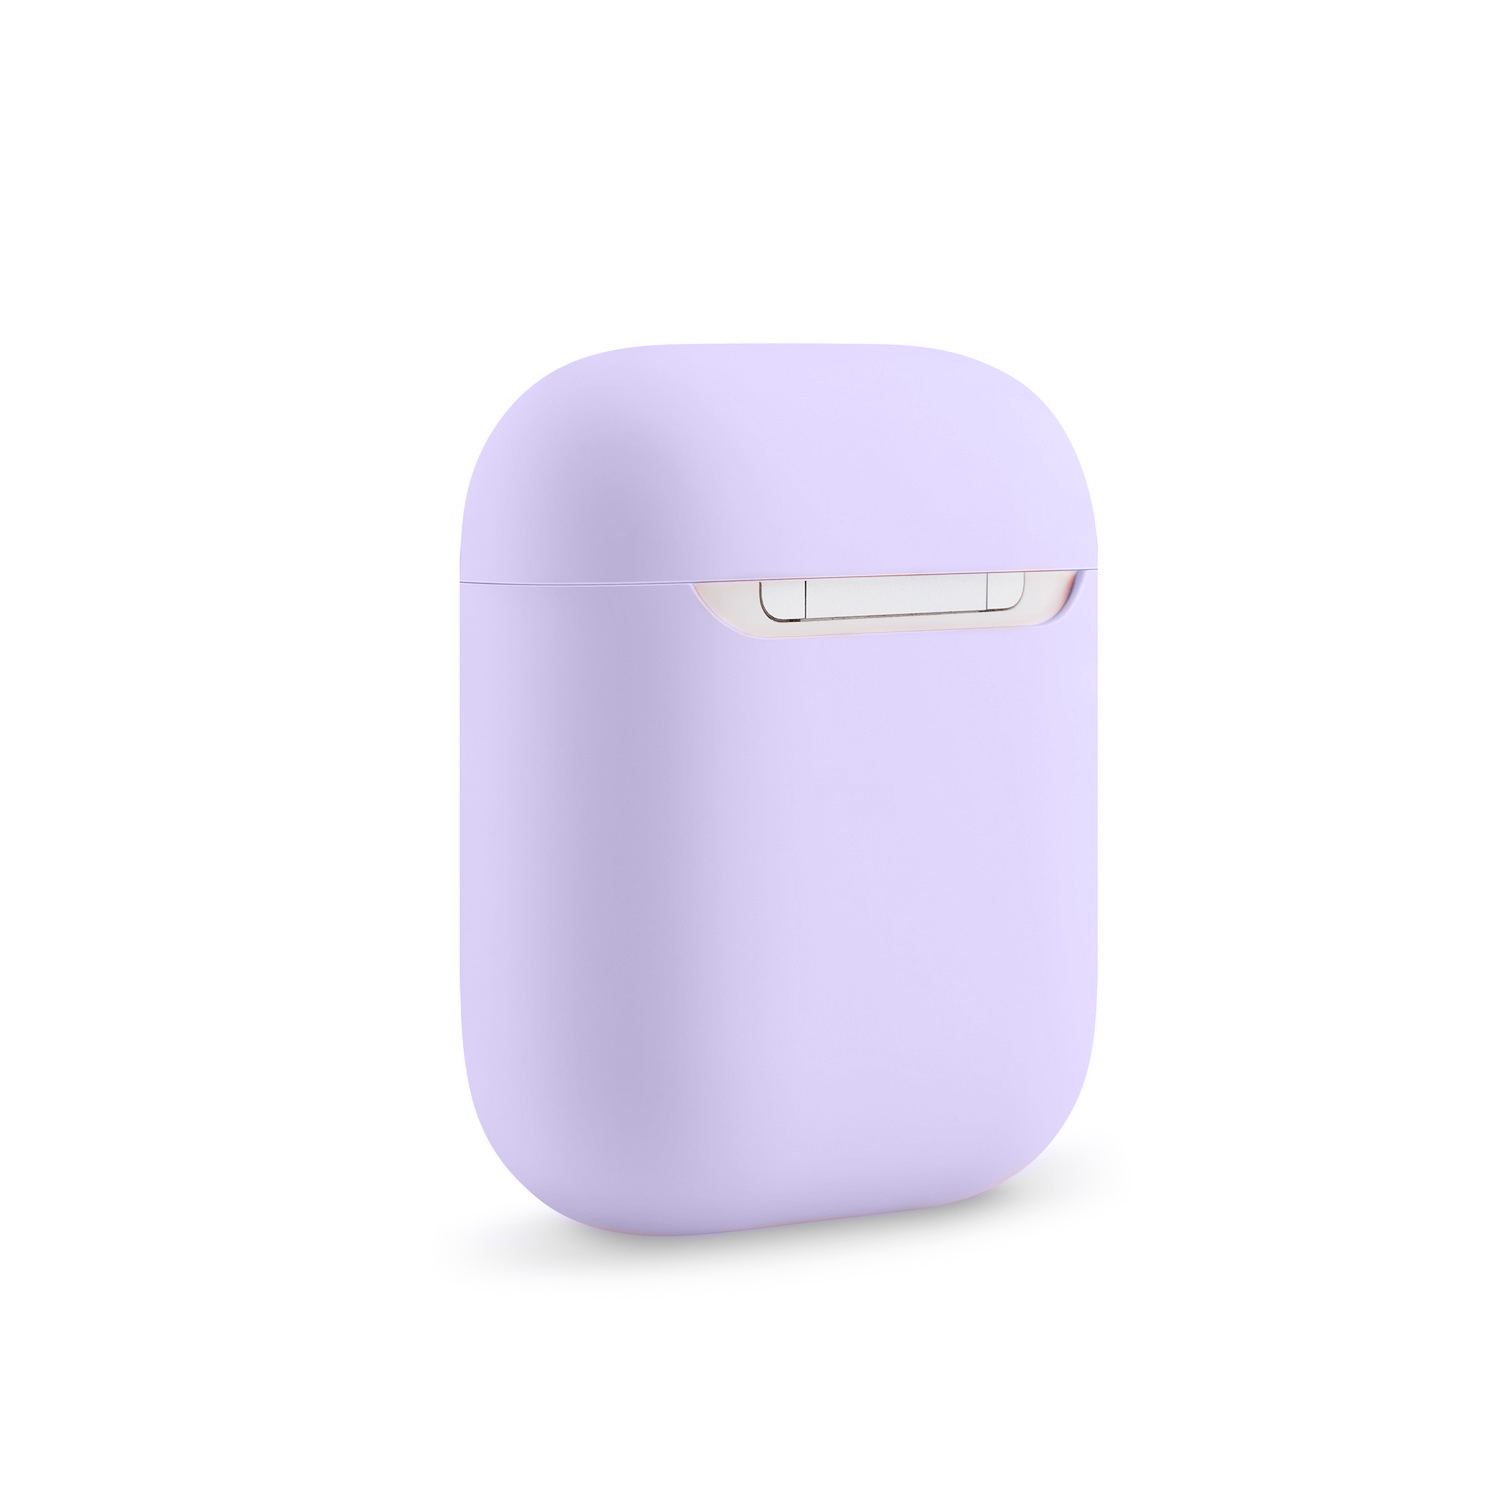 Купить с кэшбэком Solid Color Soft Silicone for AirPods Apple or i10 i11 i12  Wireless Bluetooth Earphone Protective Case Protective Earphone Case